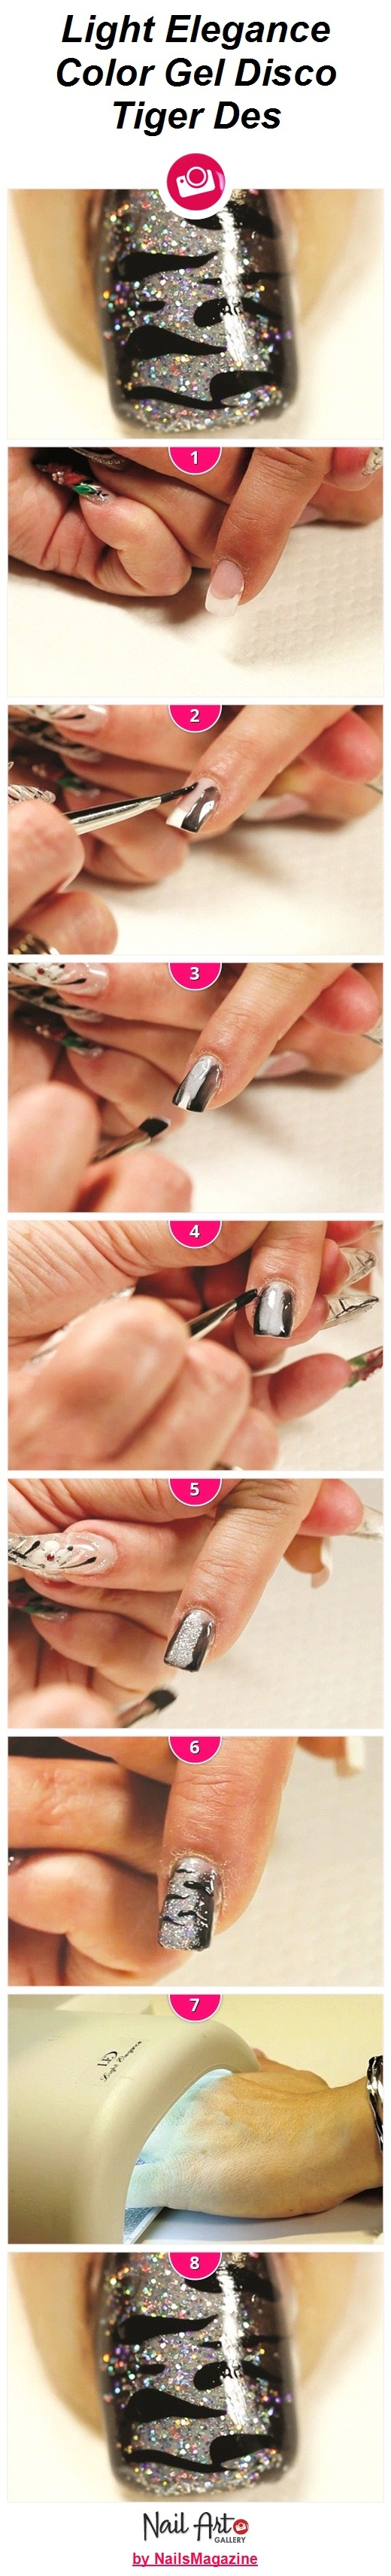 Light Elegance Color Gel Disco Tiger Des Nail Art How-To from Nail Art Gallery